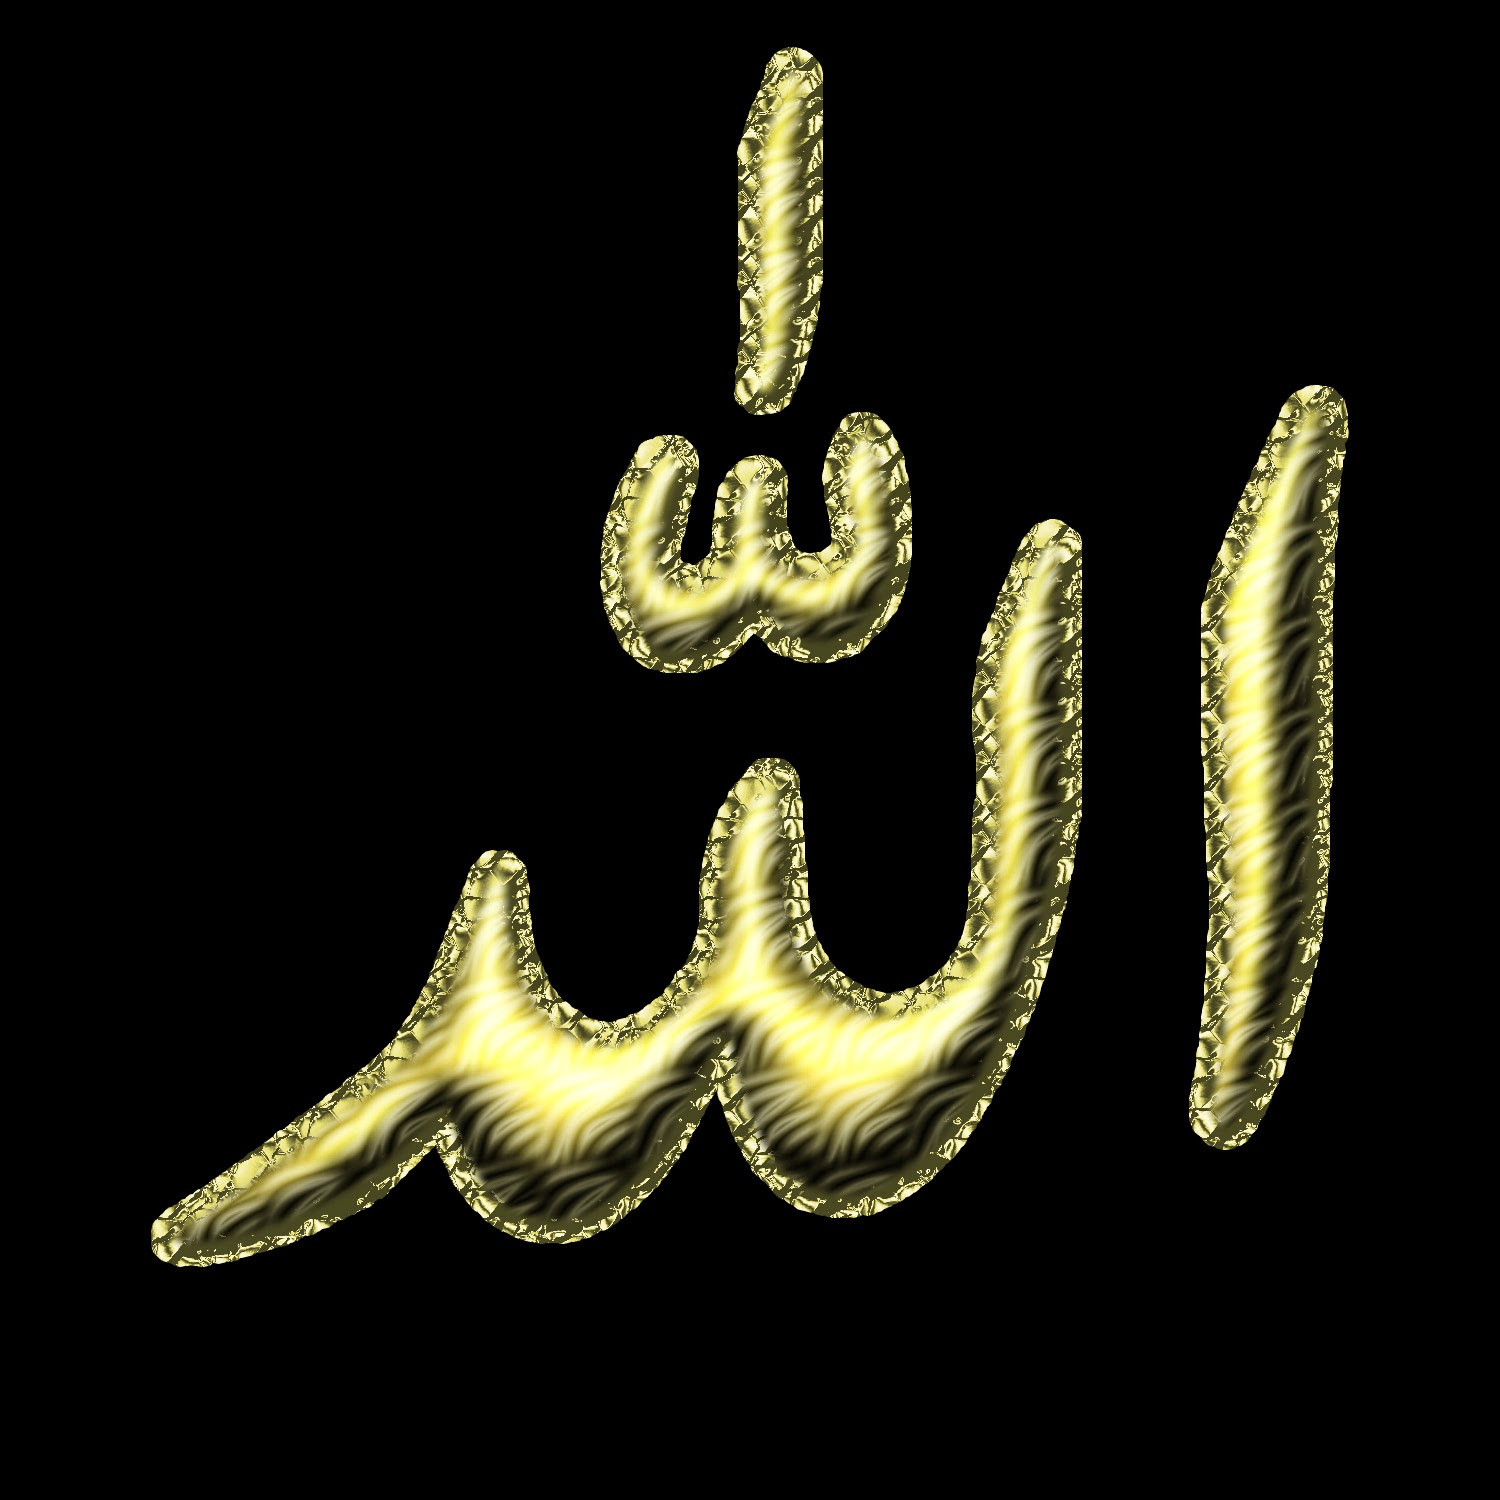 Cool Wallpaper Name Animation - allah%2B(8)  Perfect Image Reference_18912.jpg